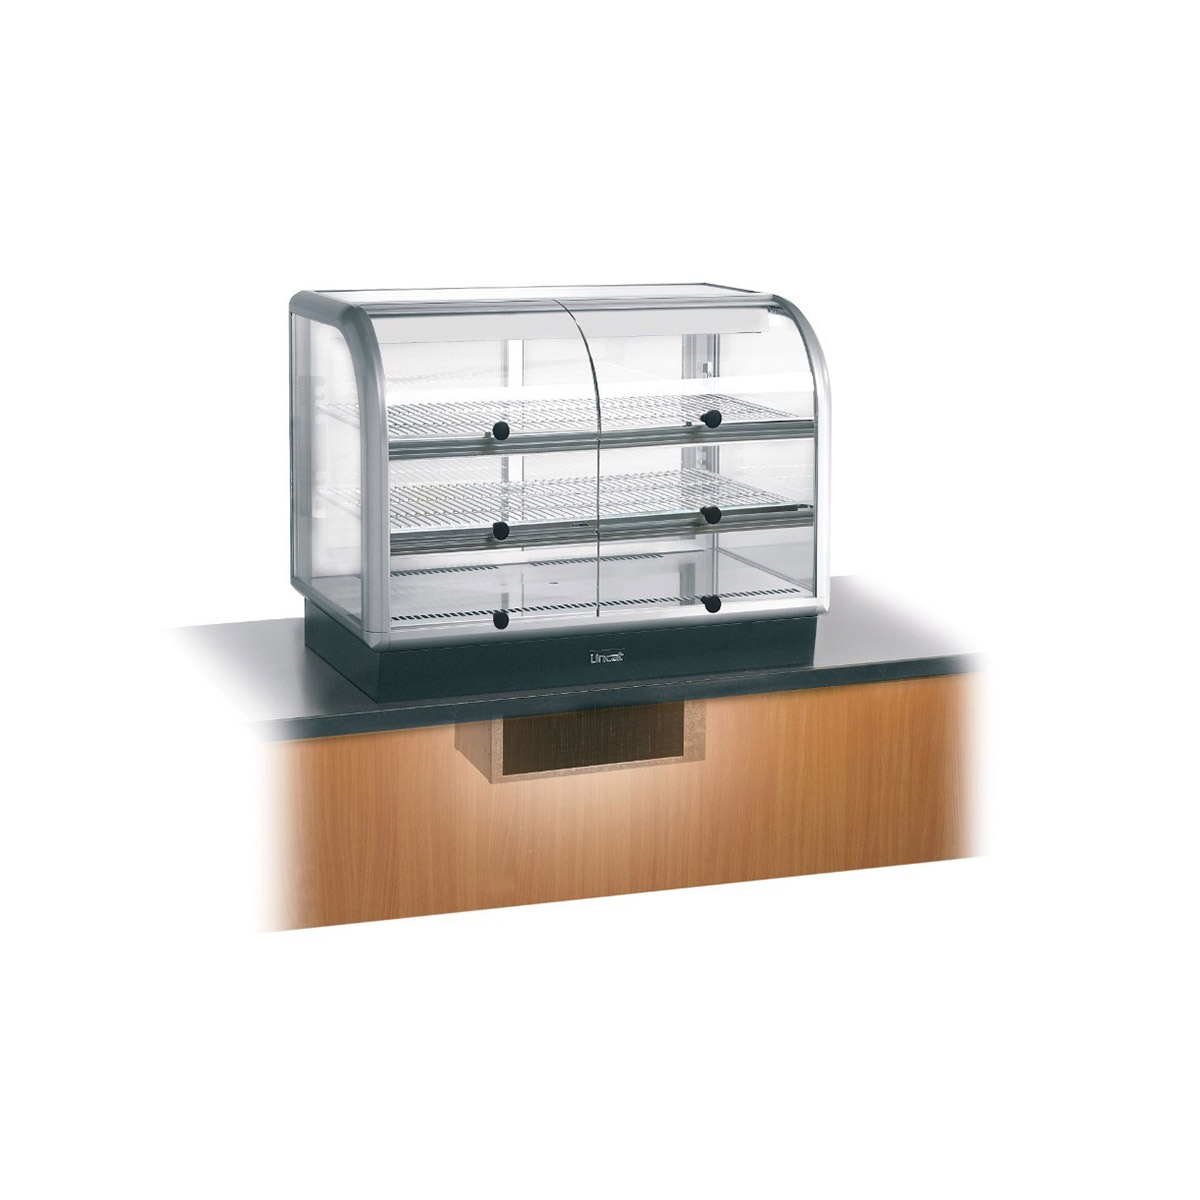 C6R/100SU - Lincat Seal 650 Series Counter-top Curved Front Refrigerated Merchandiser - Self-Service - Under-Counter Power Pack - W 1000 mm - 0.7 kW